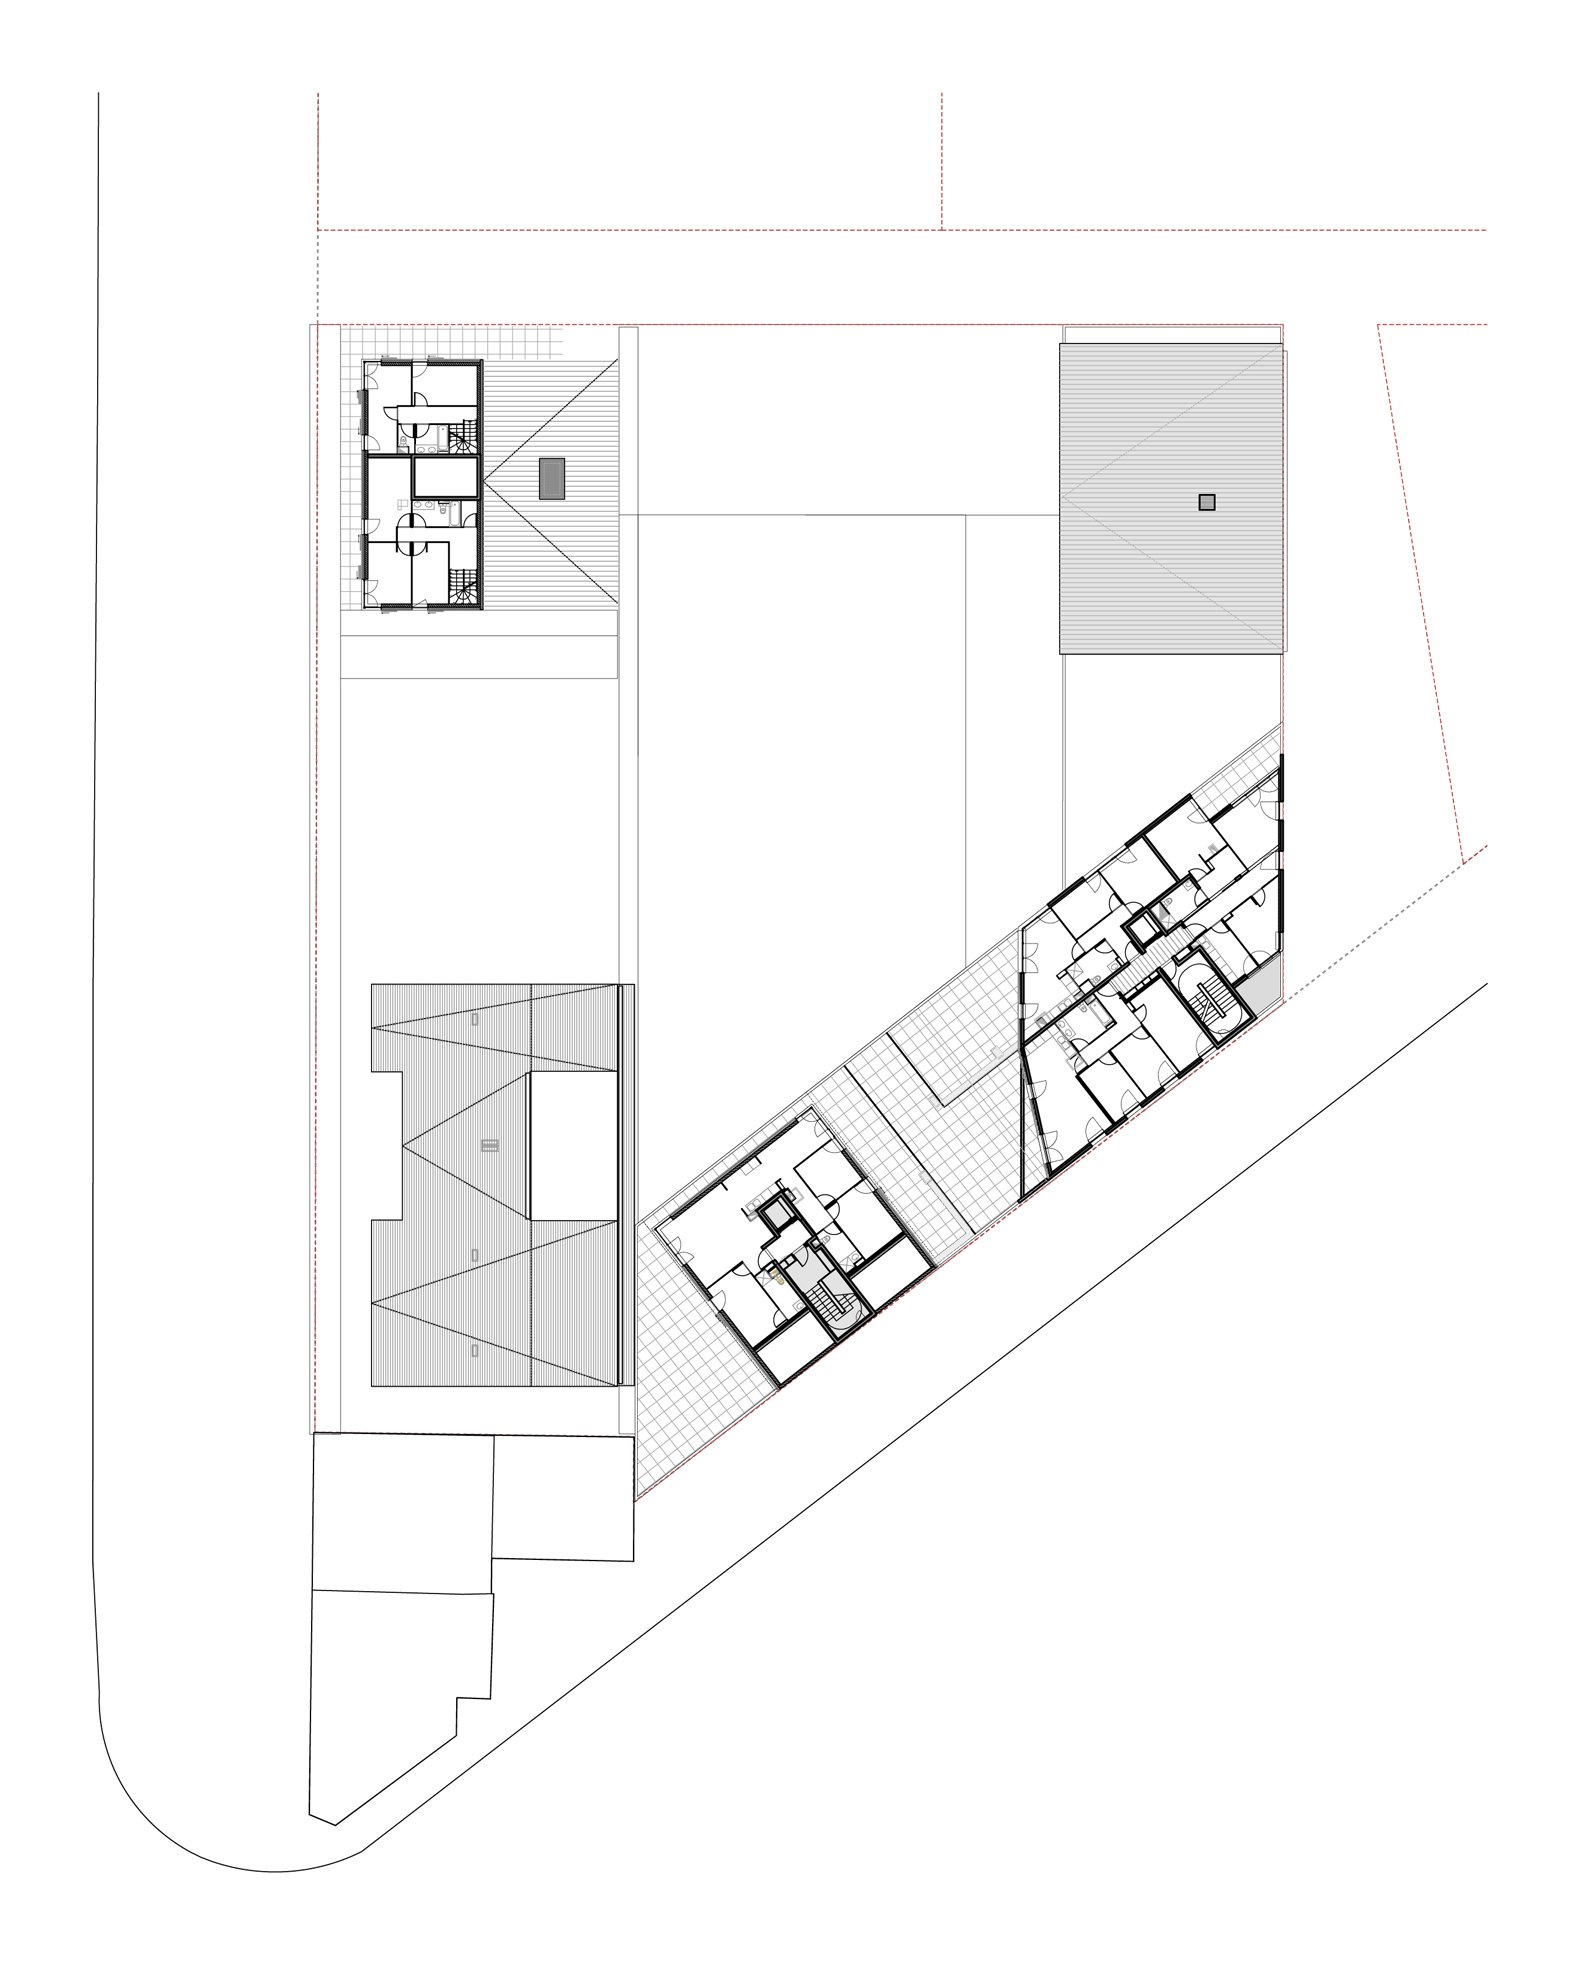 1580x1970 Urban Planning And Housing In Bordeaux By Mateo Arquitectura